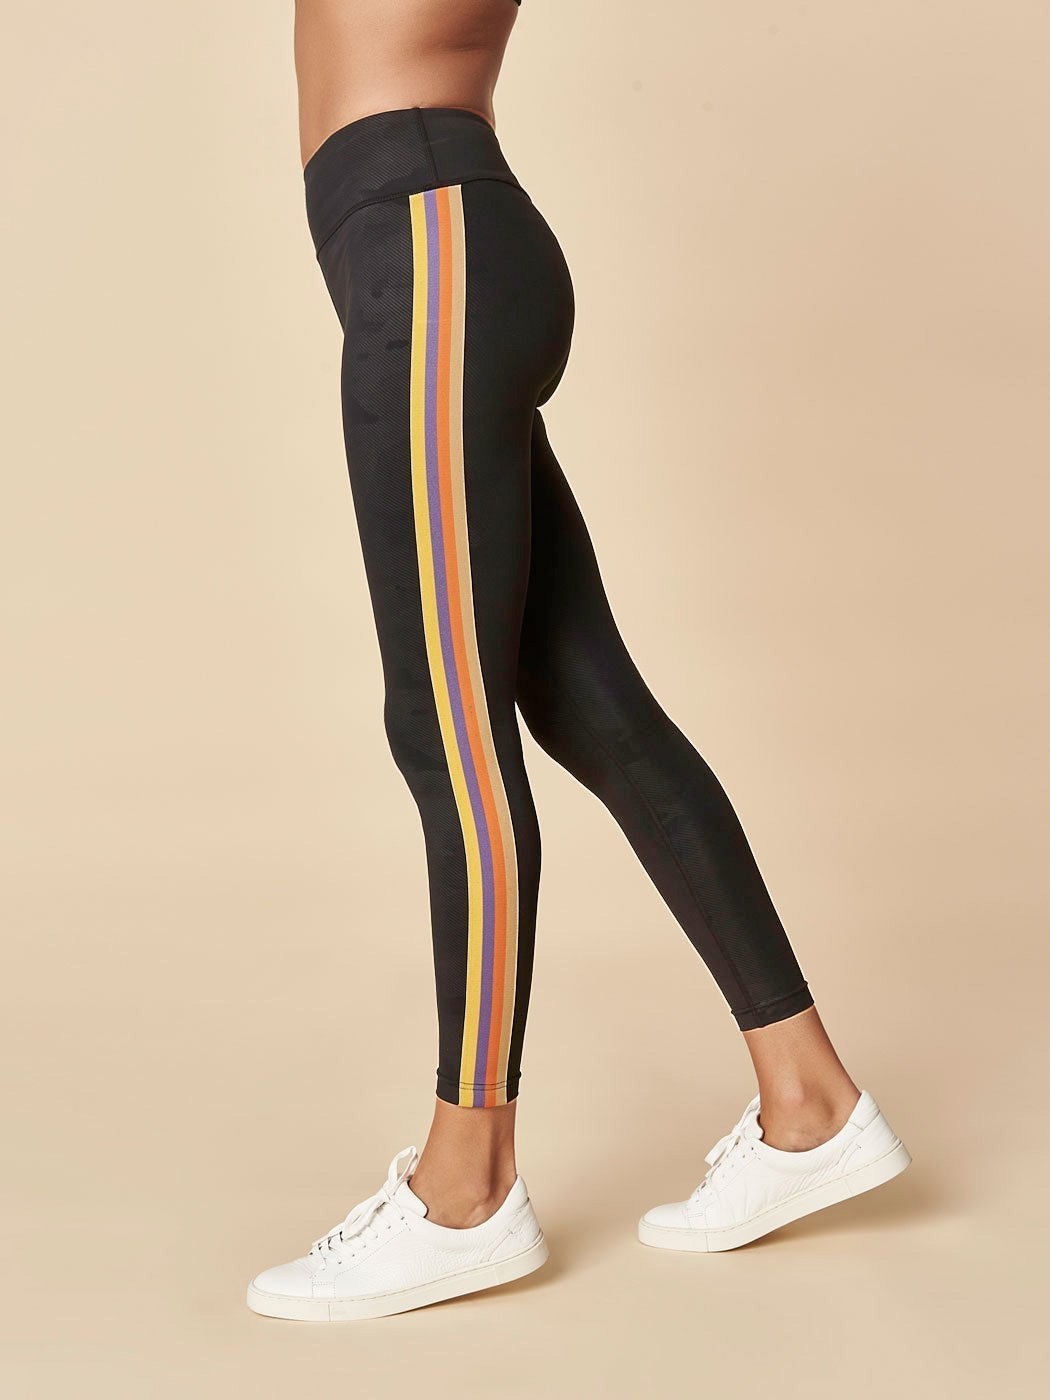 Band + Gather Stripe Legging, Final Sale